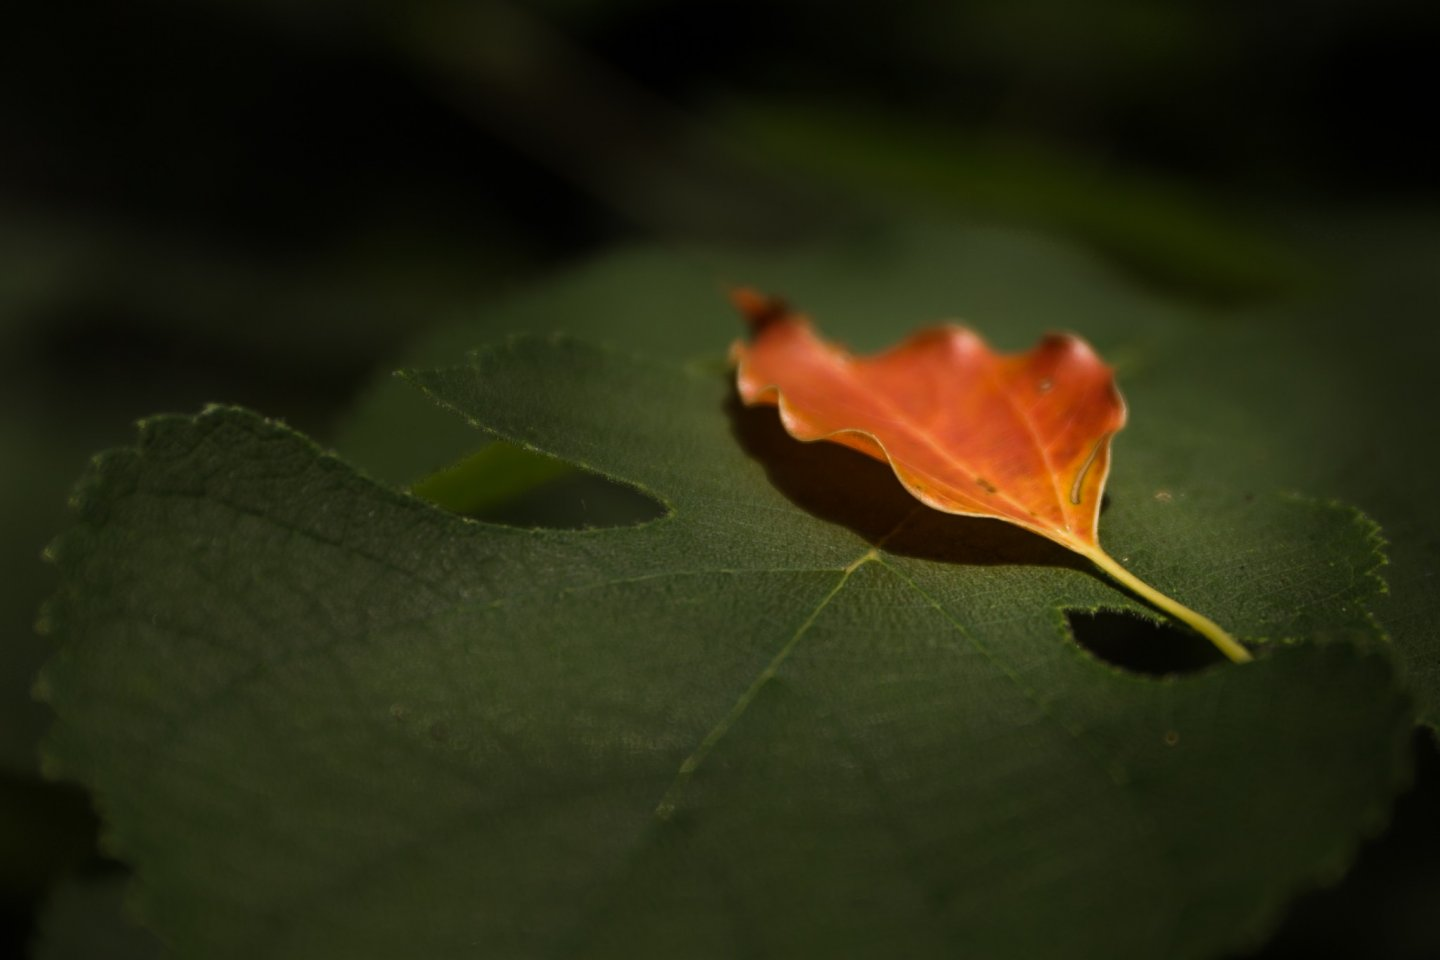 The very first glimmer of autumn